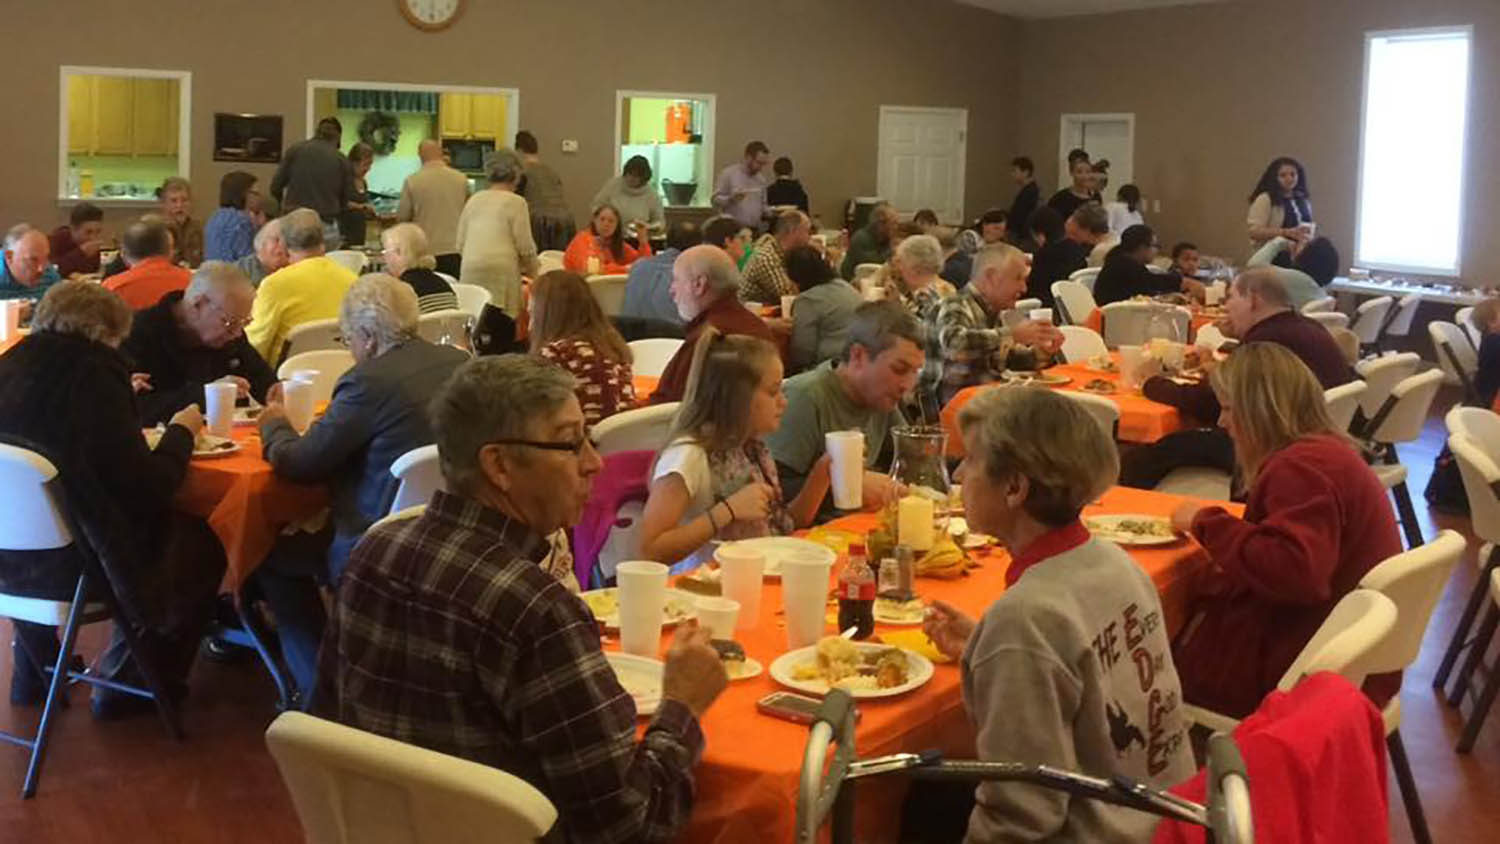 Church Thanksgiving Dinner - November 2016